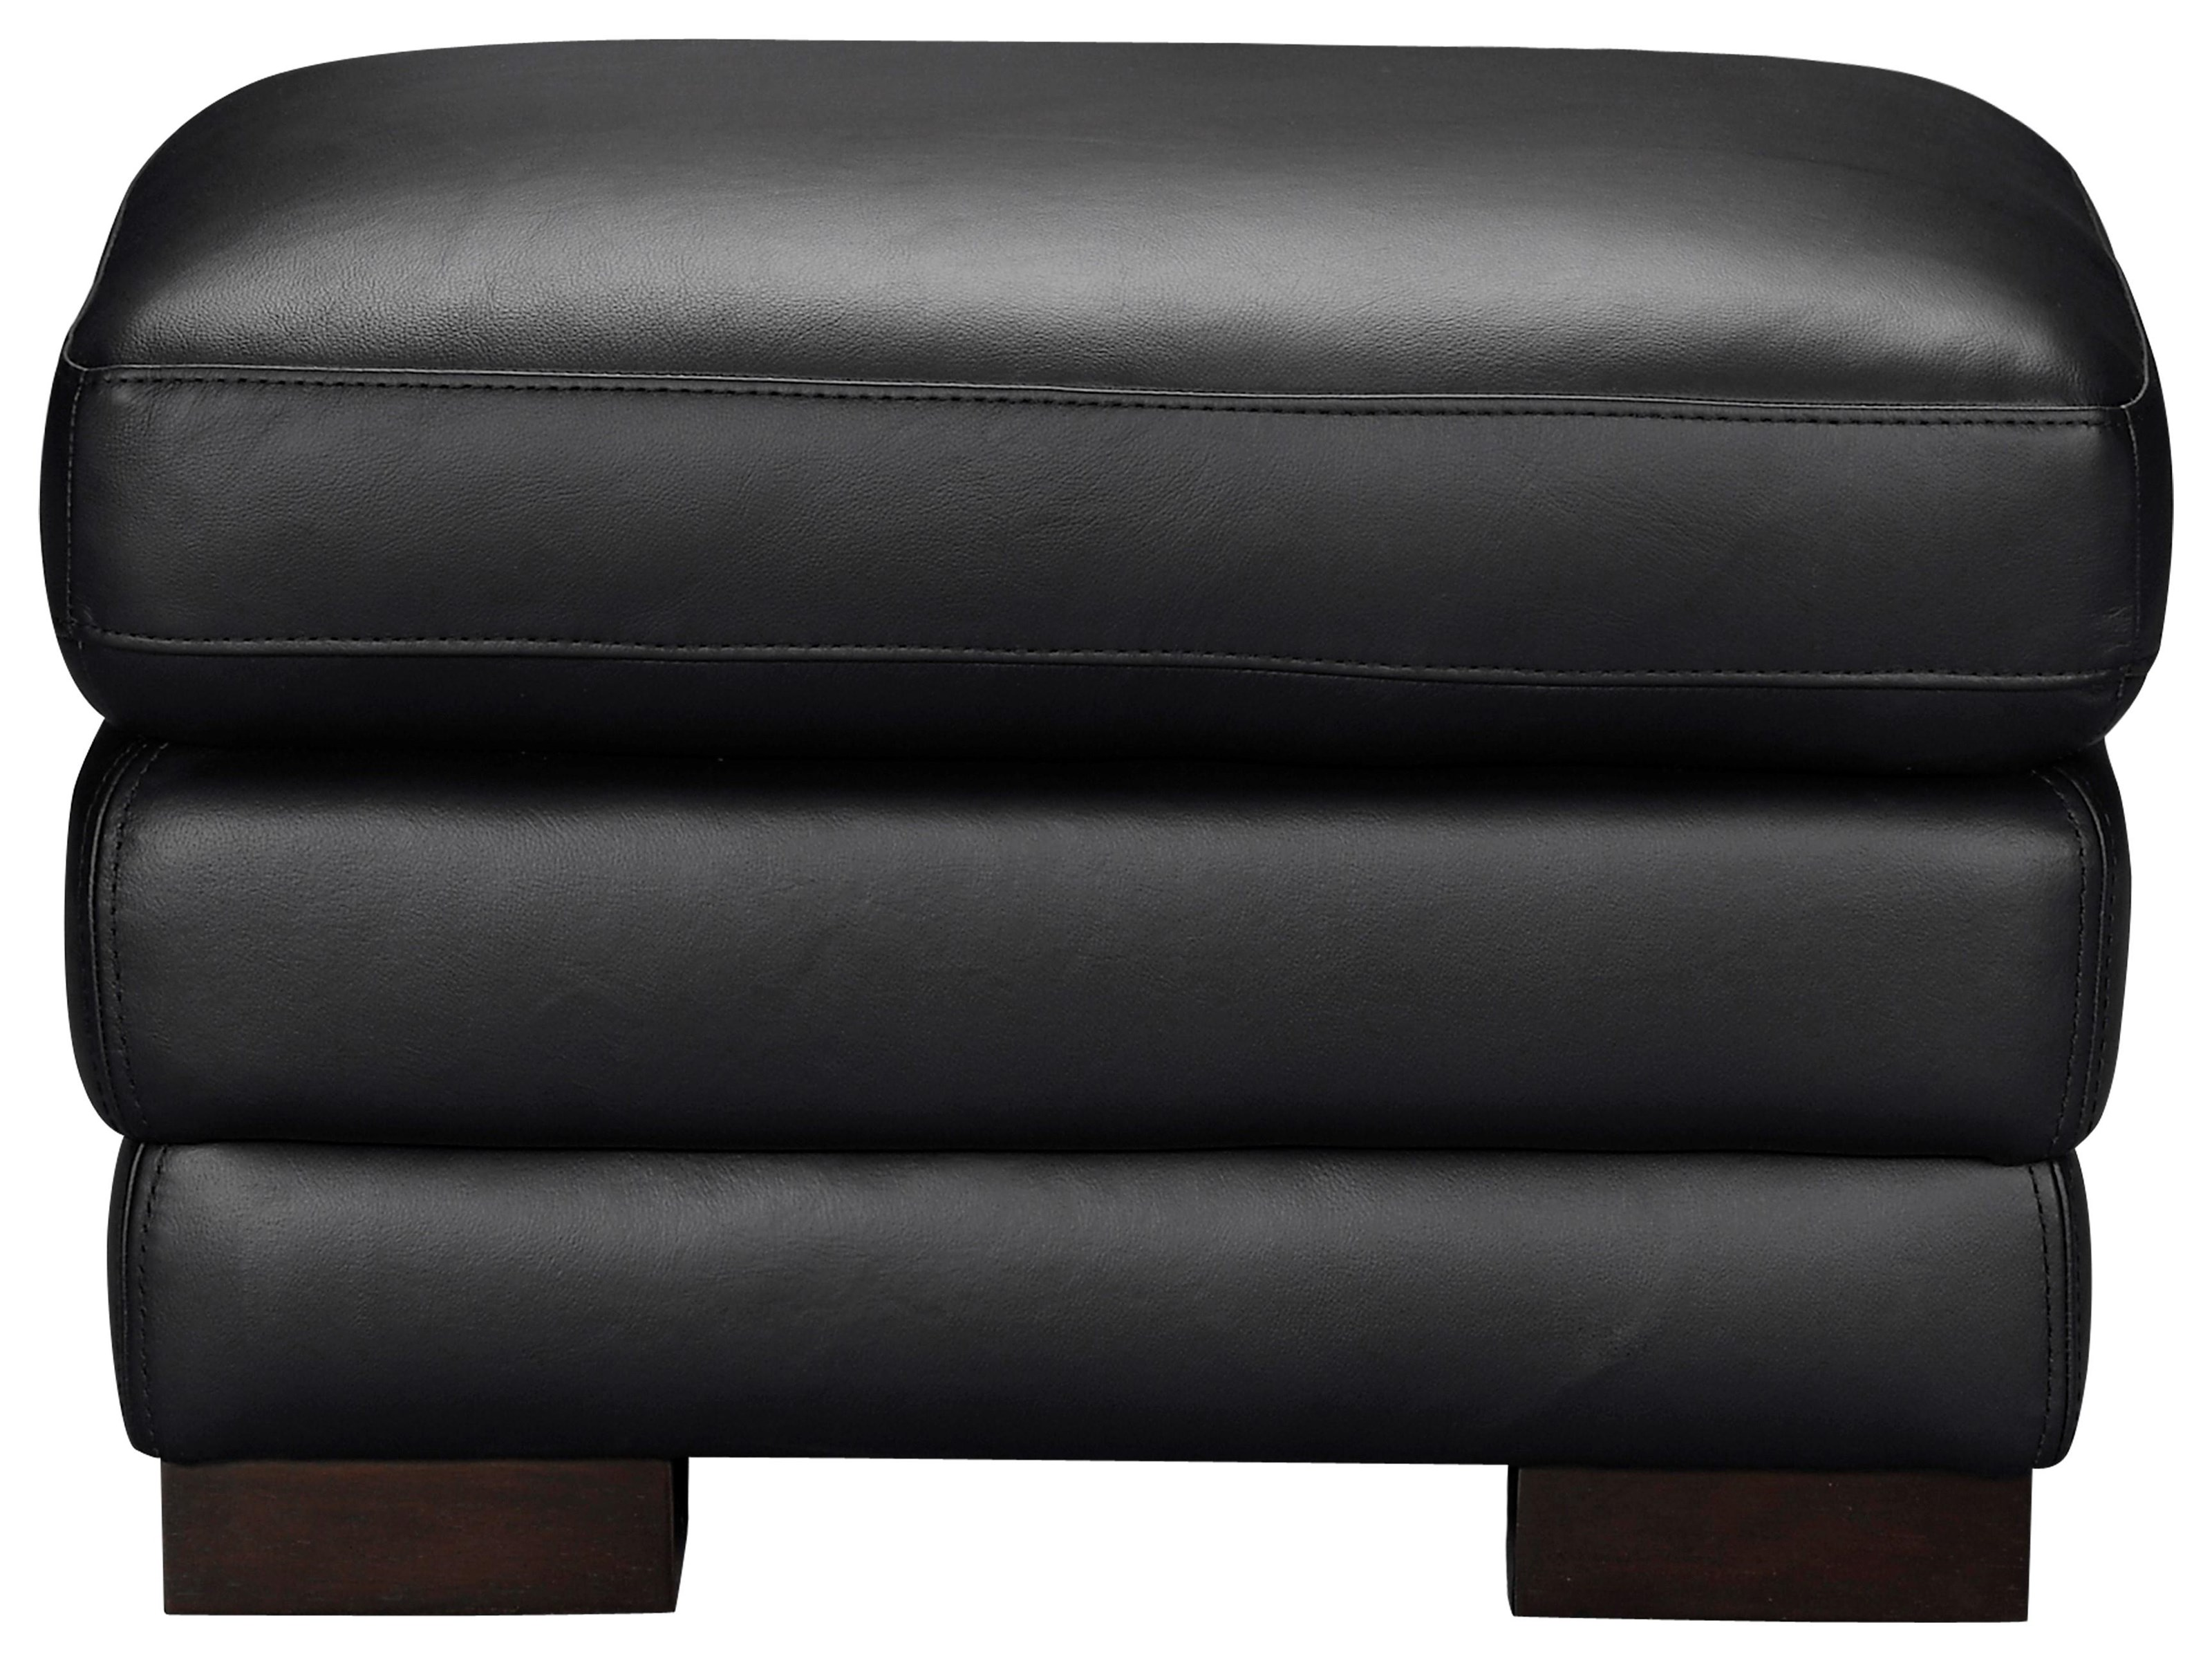 LANE Ottoman by Violino at HomeWorld Furniture